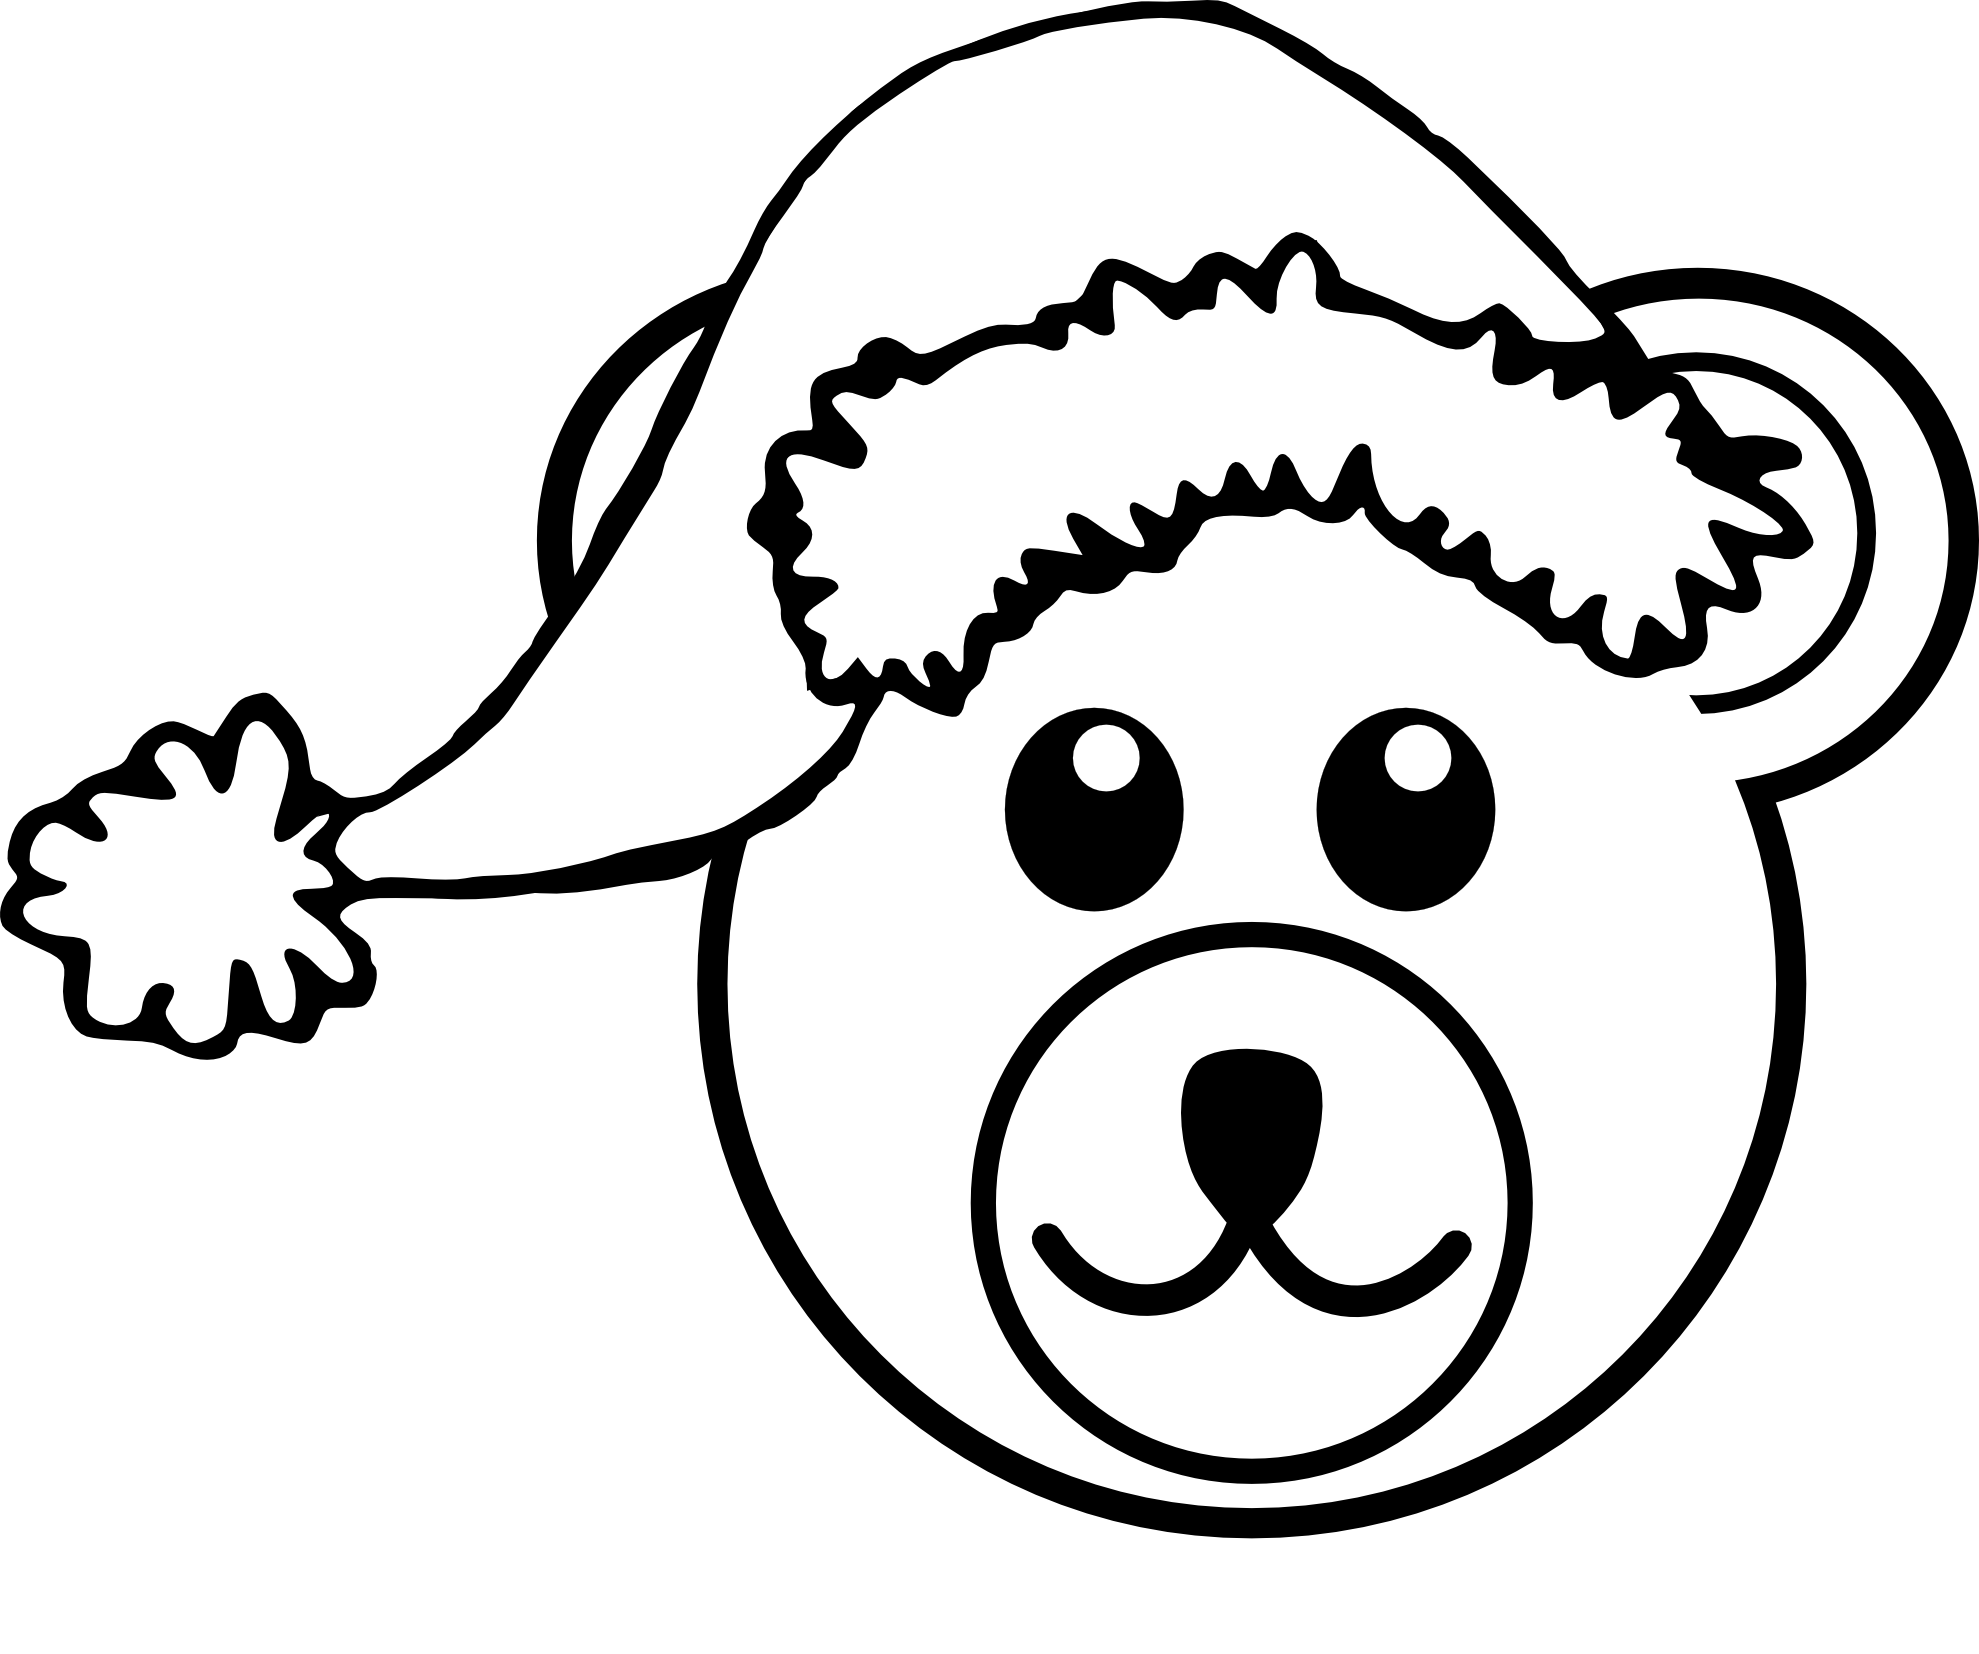 Black & White clipart #9, Download drawings